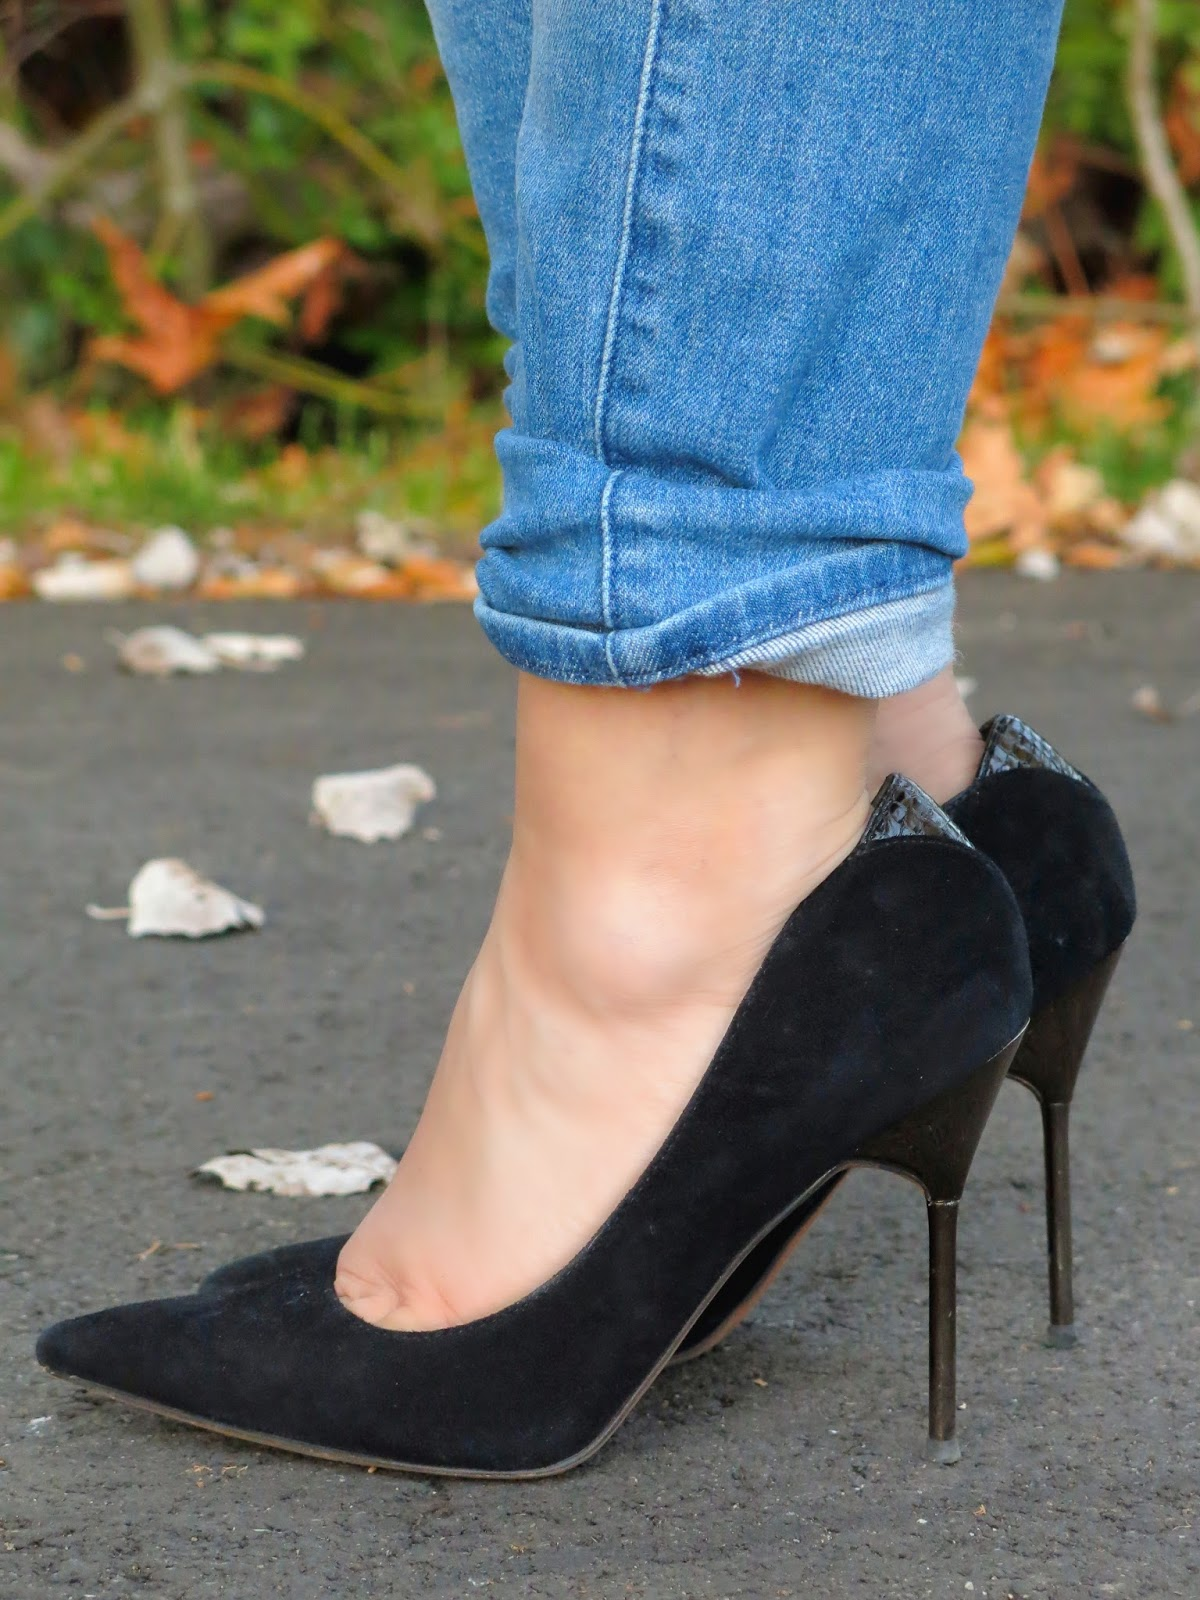 boyfriend jeans and Sam Edelman pumps